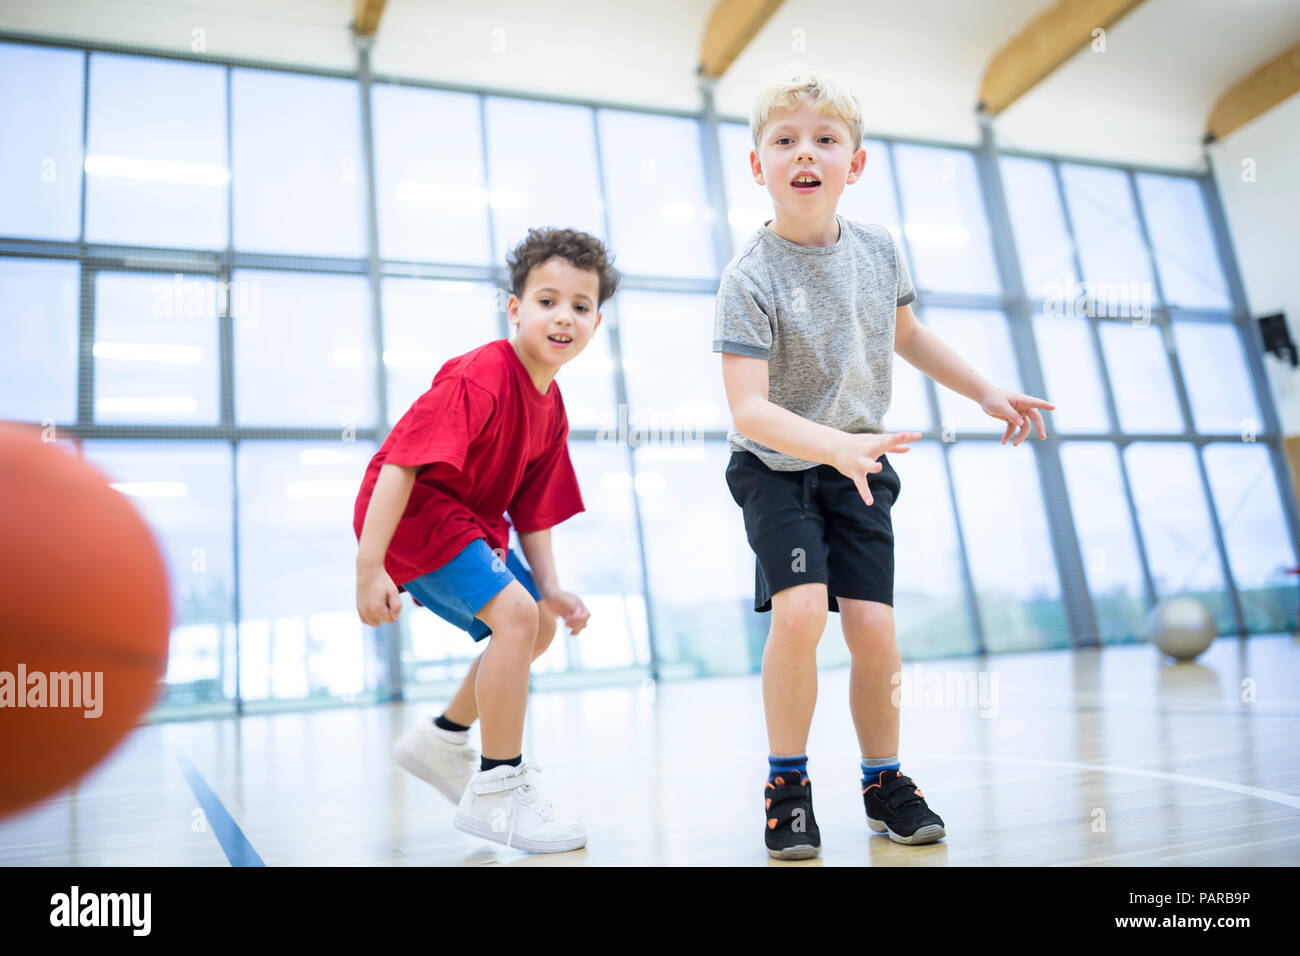 Two schoolboys playing basketball in gym class - Stock Image